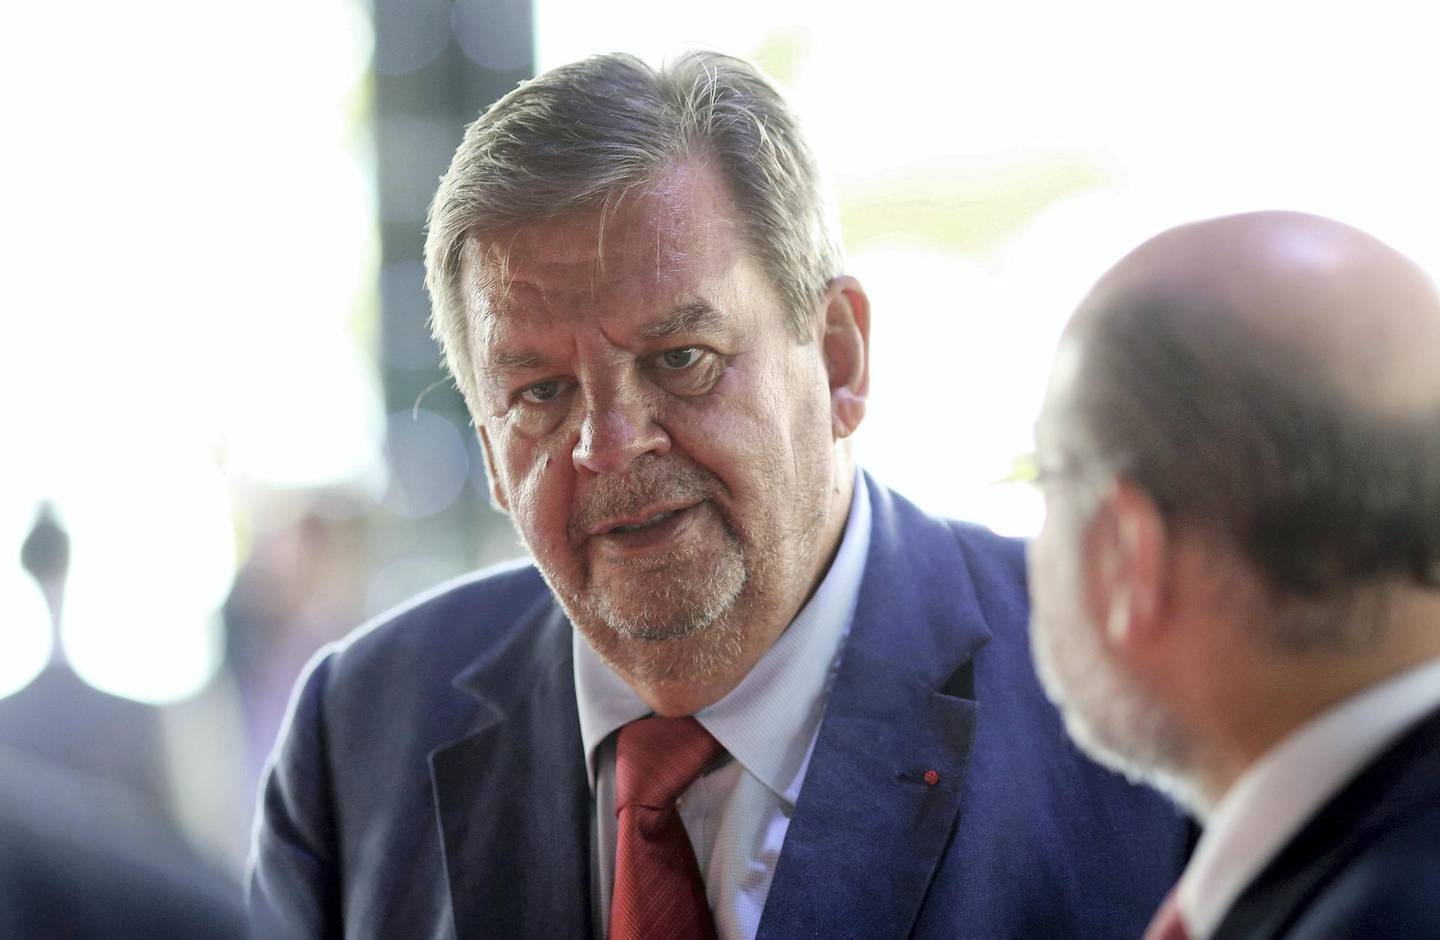 Billlionaire Johann Rupert, founder and chairman of Cie. Financiere Richemont SA, speaks with delegates during the Business of Luxury summit in Monaco, on Monday, June 8, 2015. The Monaco Business of Luxury summit runs from June 8-9. Photographer: Chris Ratcliffe/Bloomberg *** Local Caption *** Johann Rupert